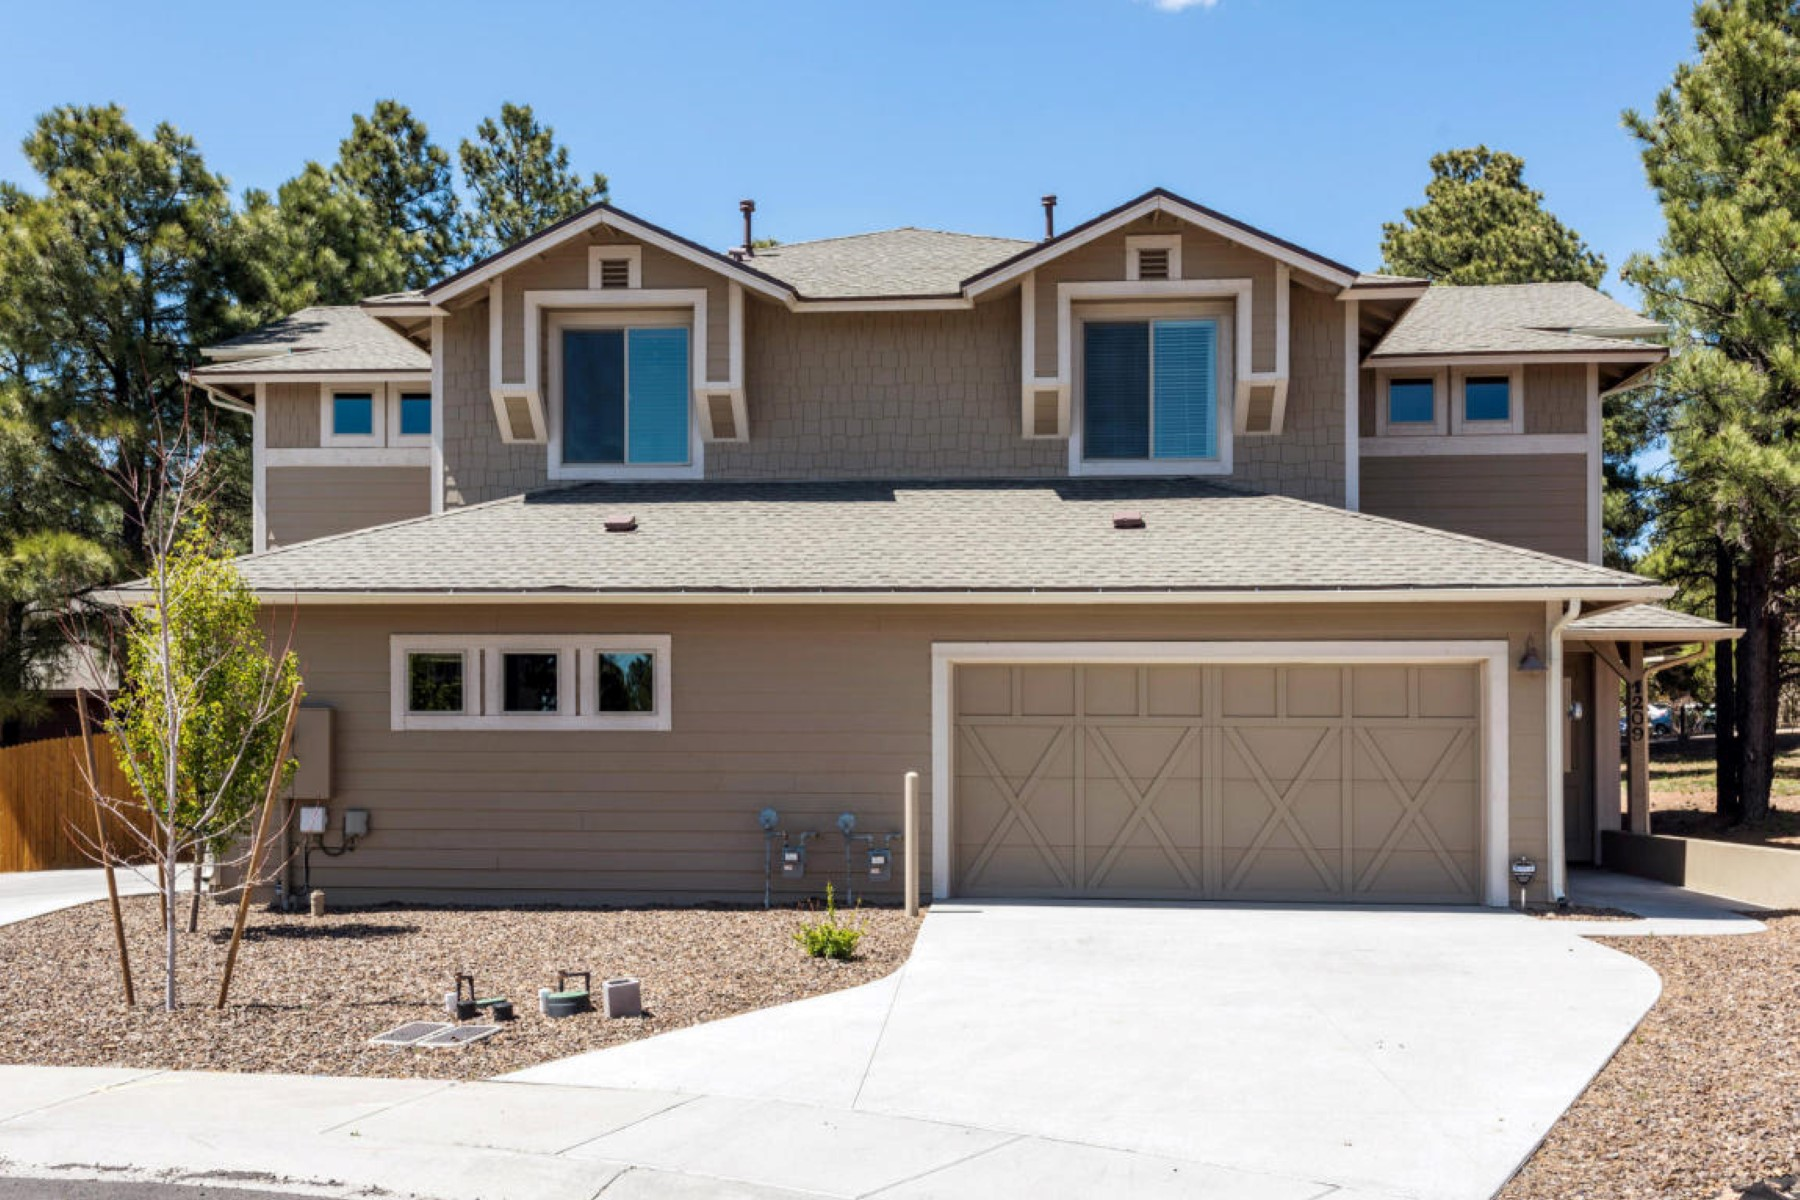 Townhouse for Sale at Quality Construction by Miramonte Homes 1136 N Waterside DR Lot 14 Flagstaff, Arizona, 86004 United States